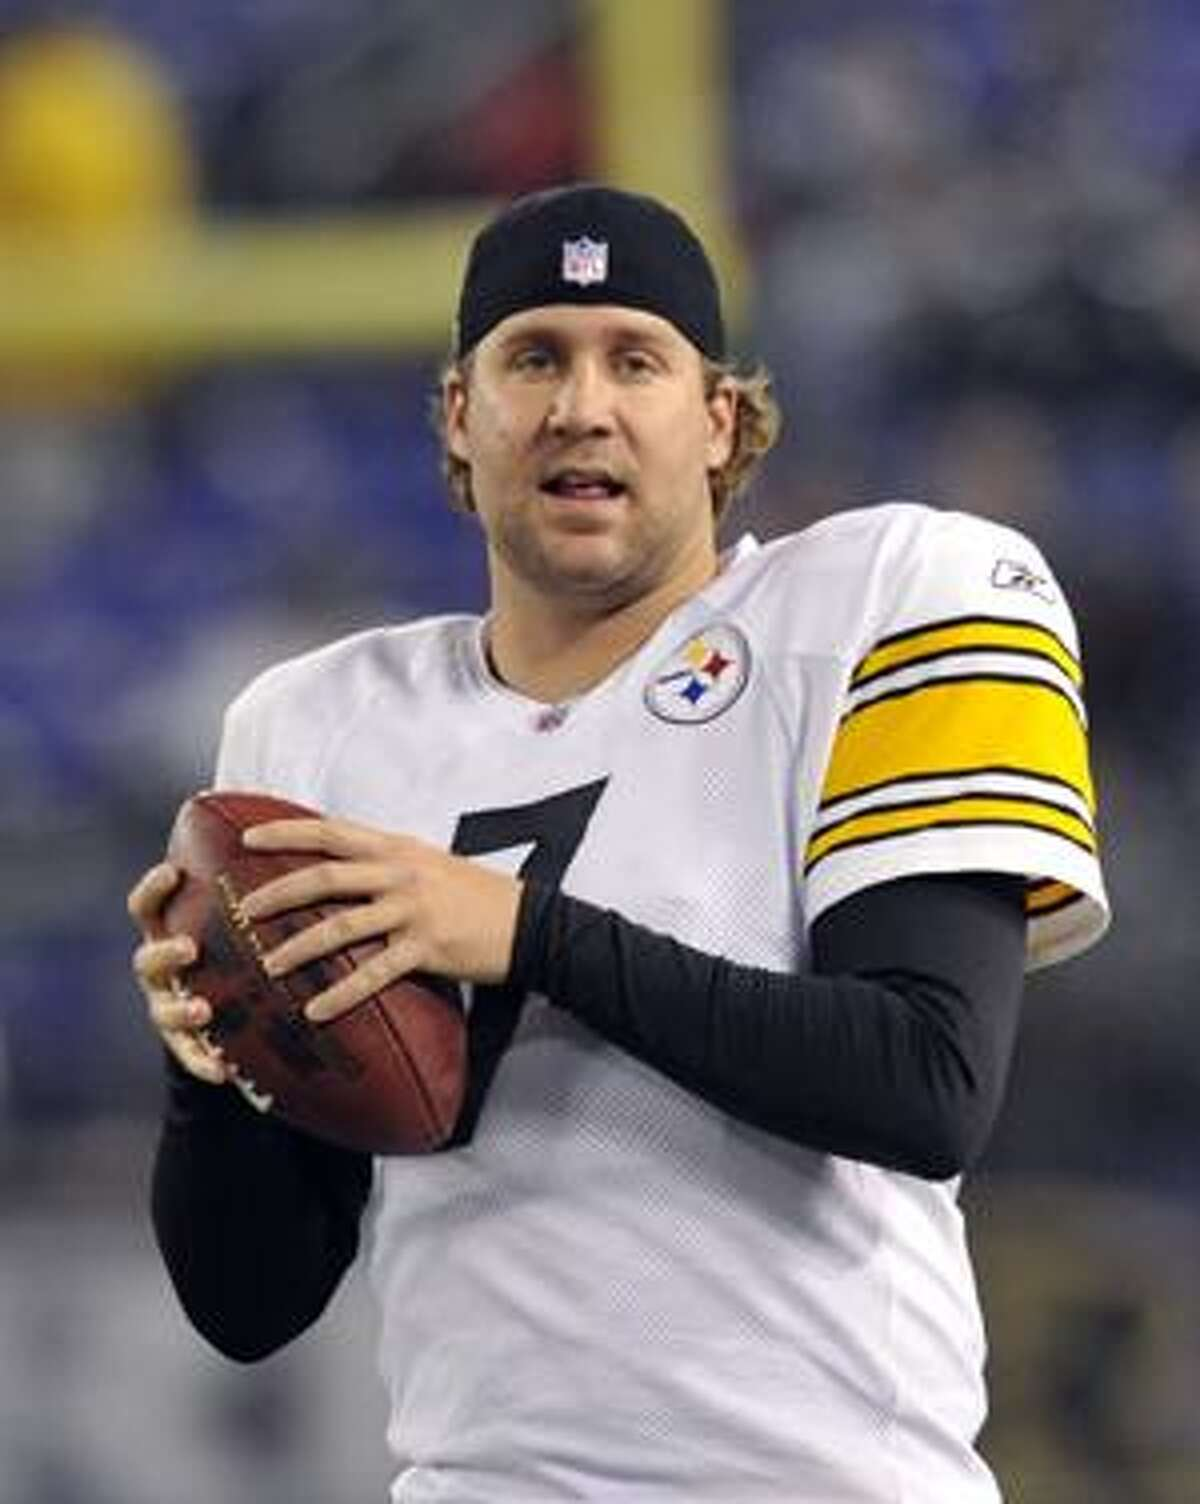 FILE - This Nov. 29, 2009, file photo shows Pittsburgh Steelers quarterback Ben Roethlisberger warming up prior to the start of an NFL football game against the Baltimore Ravens, in Baltimore.